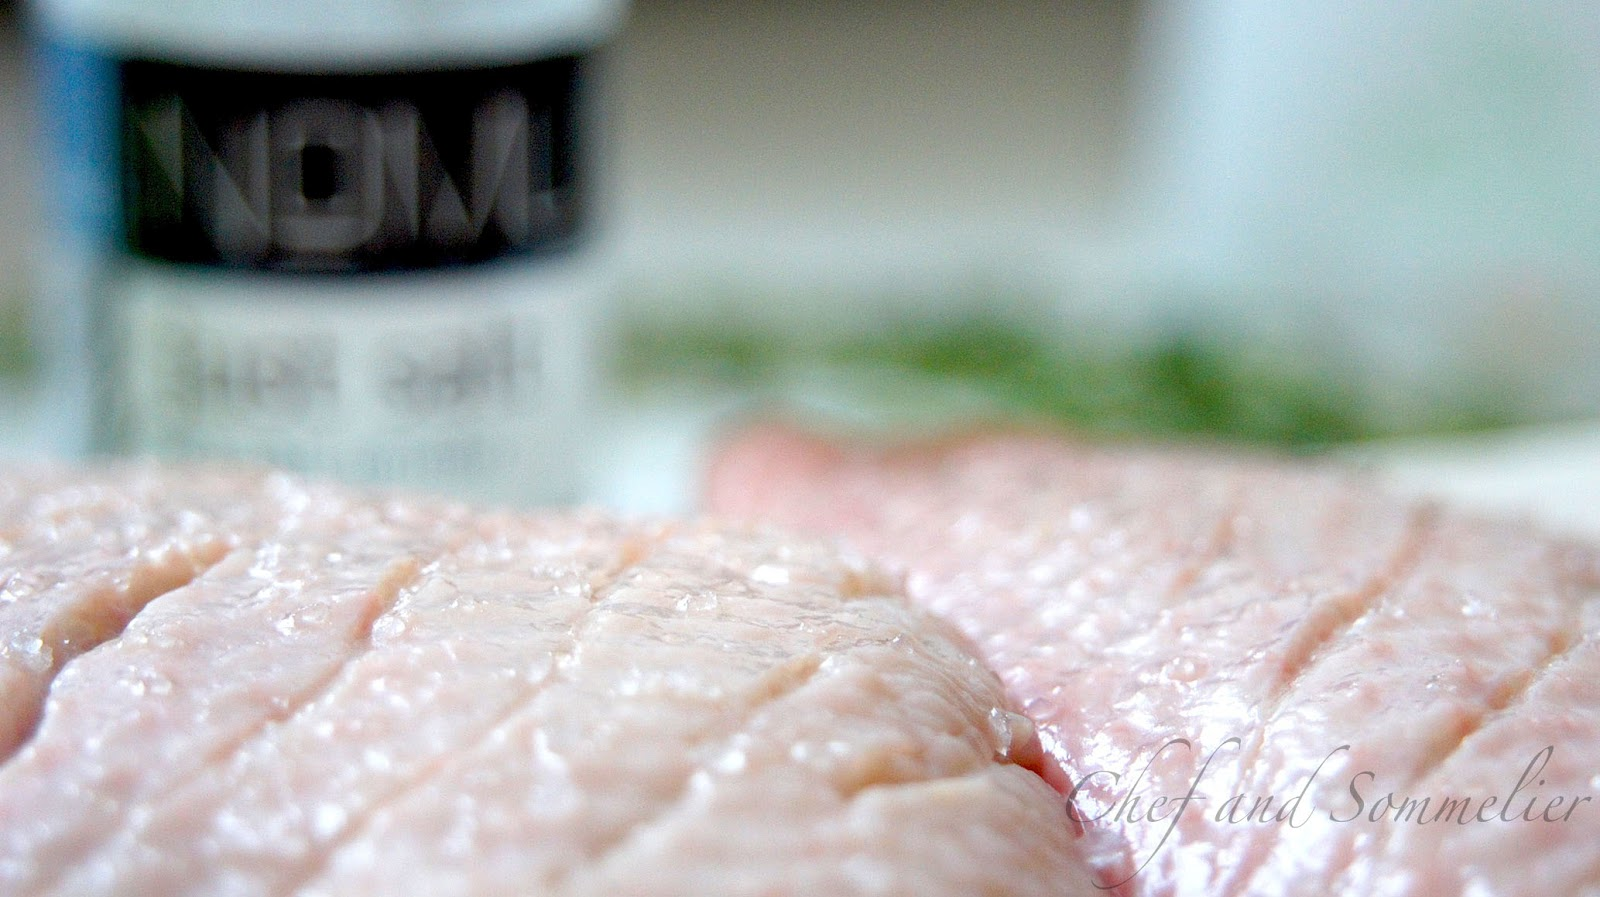 Chef and Sommelier: Sous Vide Duck Breast with Balsamic Honey Sauce